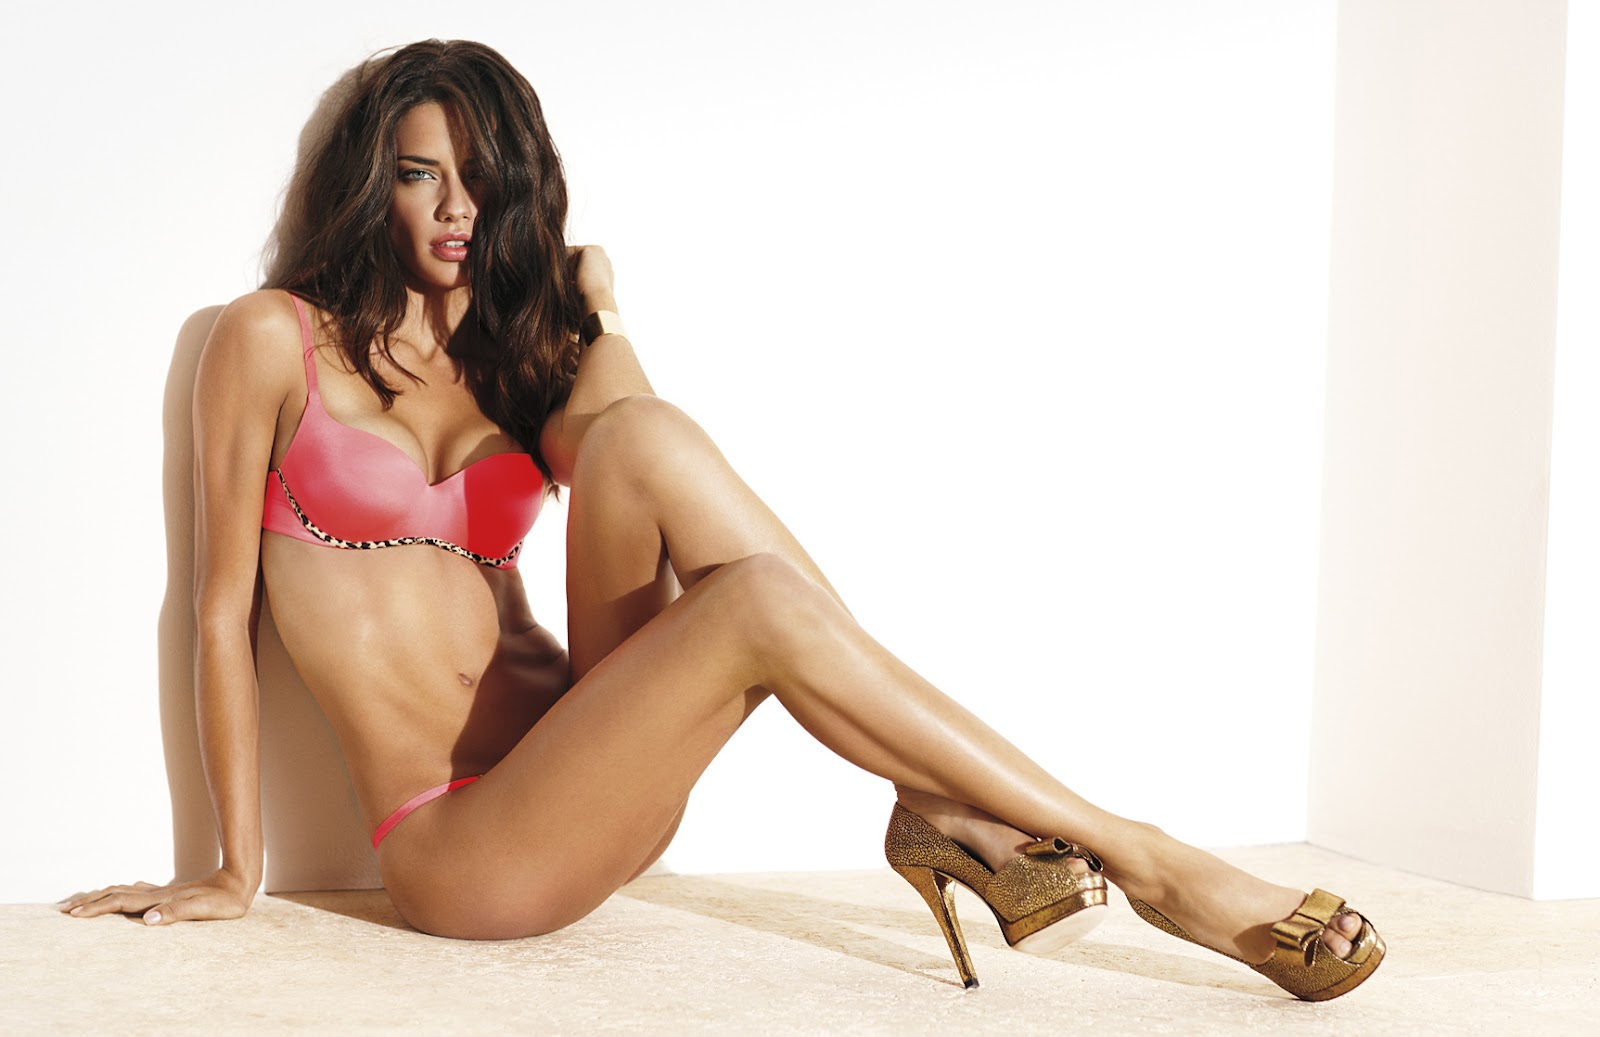 Adriana Lima photo 3847 of 6356 pics, wallpaper - photo ... Monica Bellucci